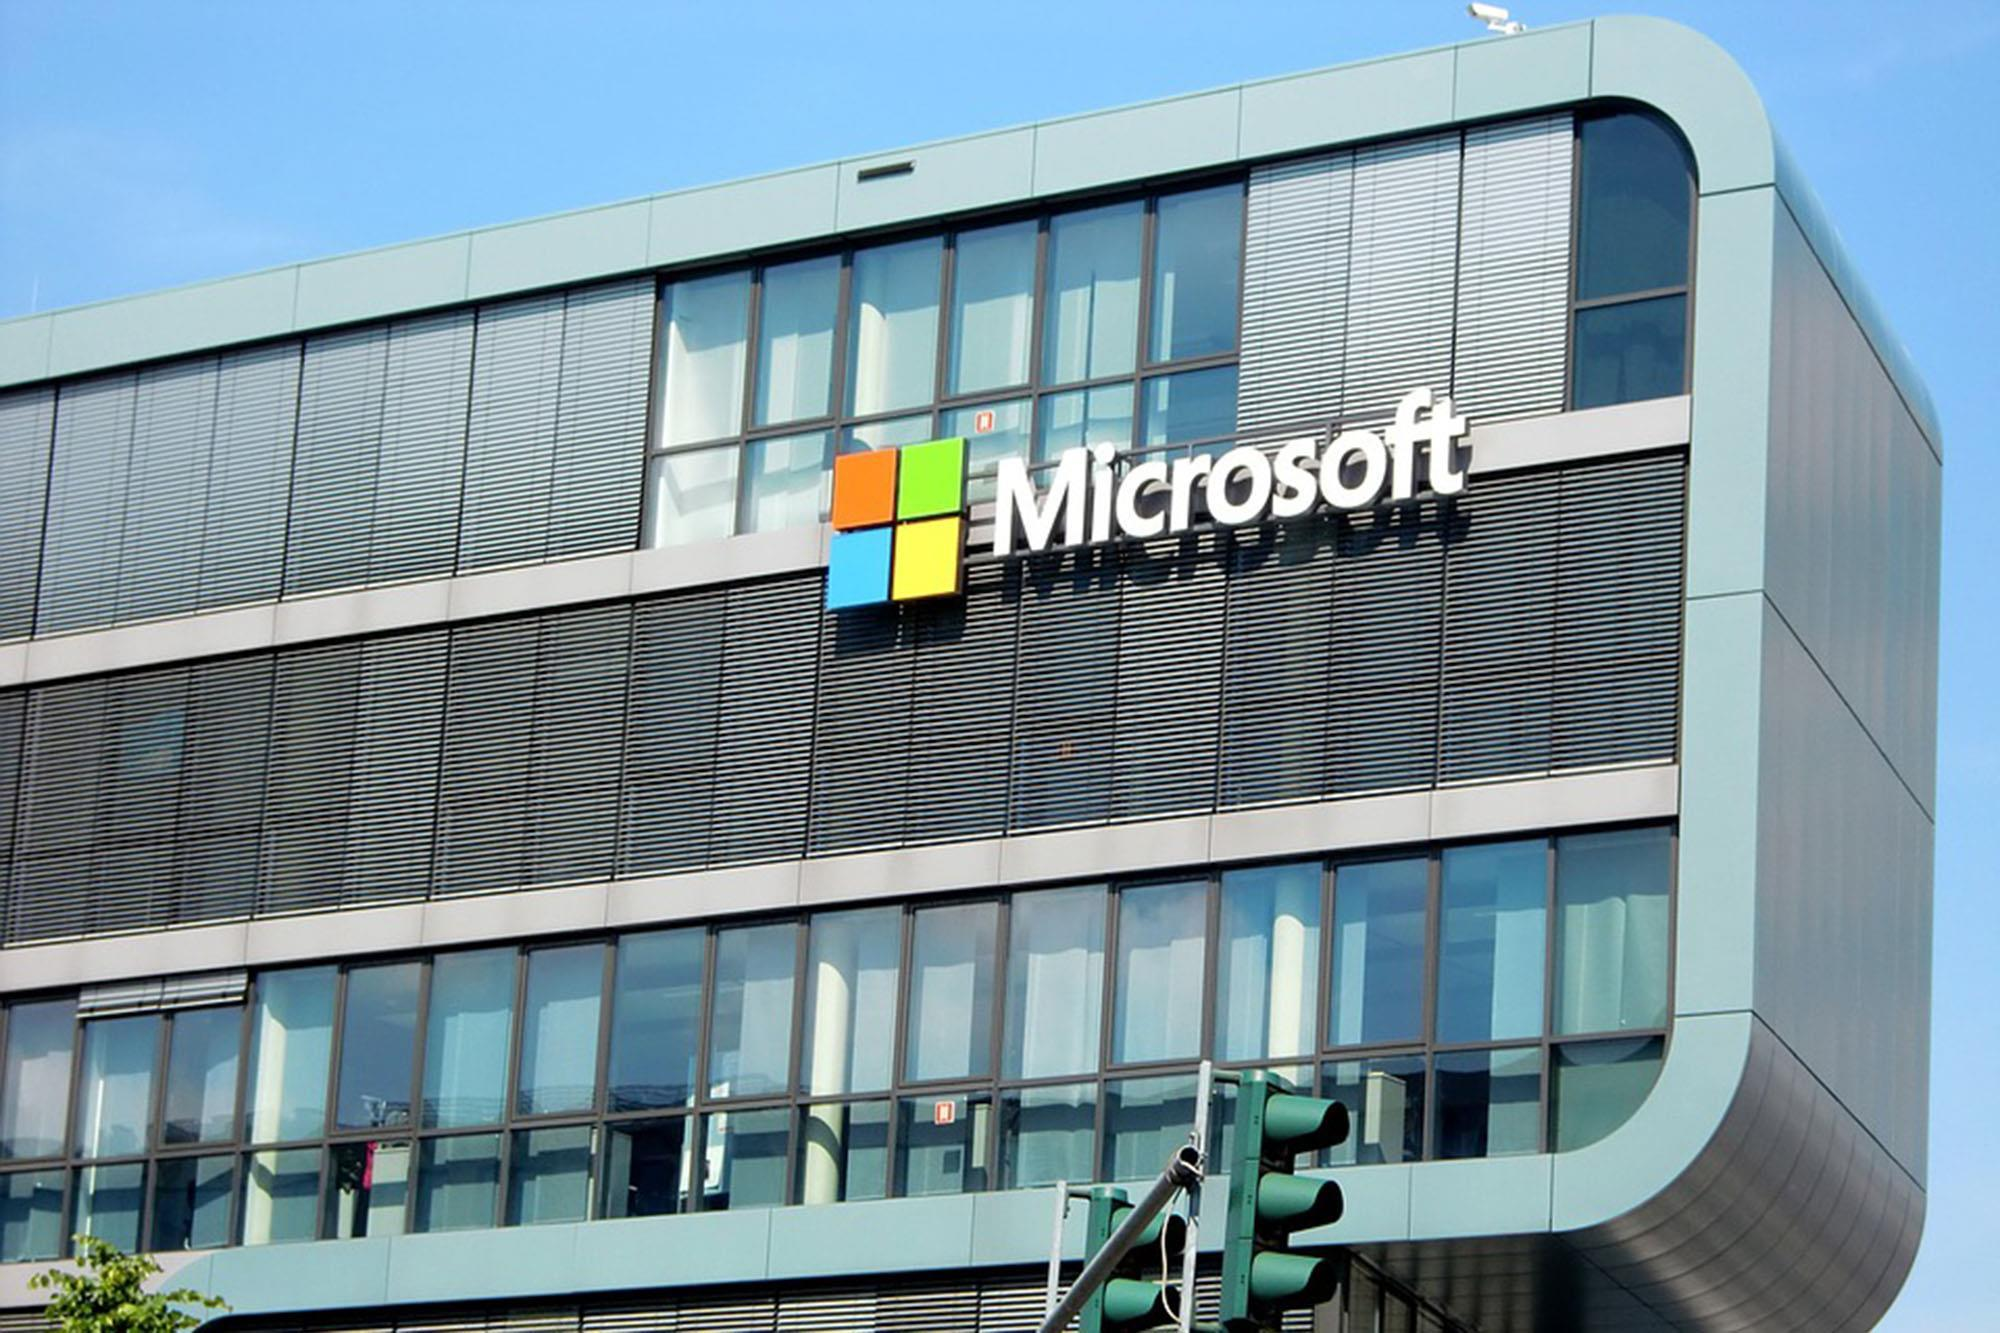 Deloitte names, describes two CAMs at Microsoft | Article